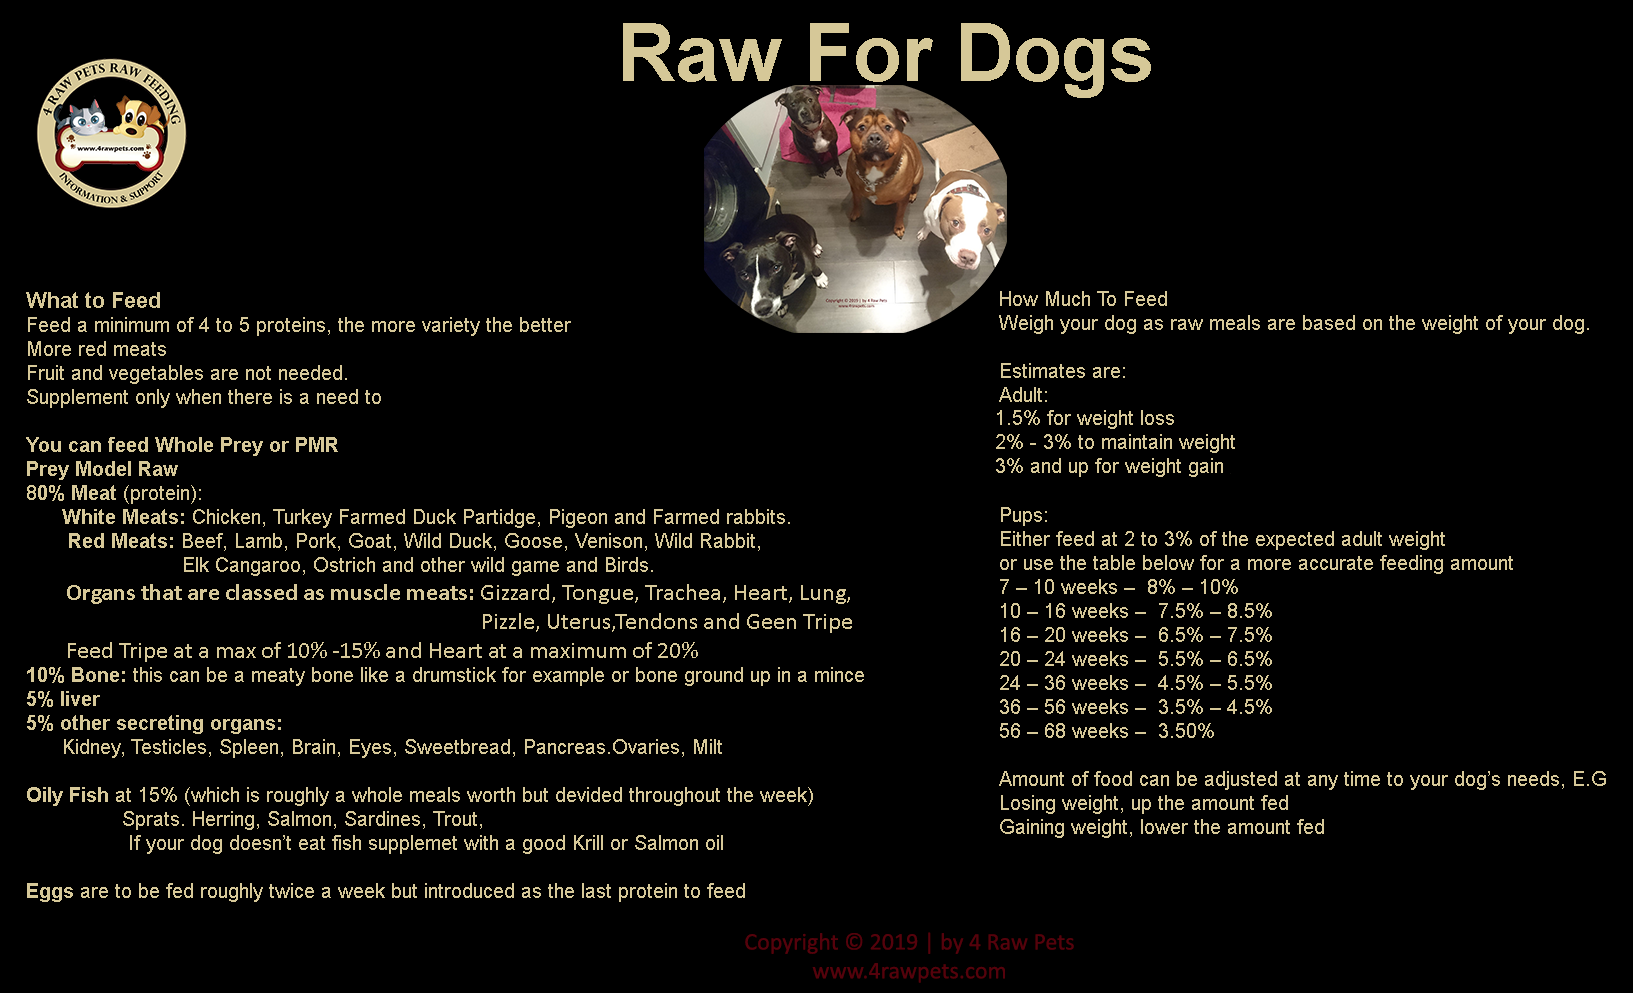 Raw for dogs